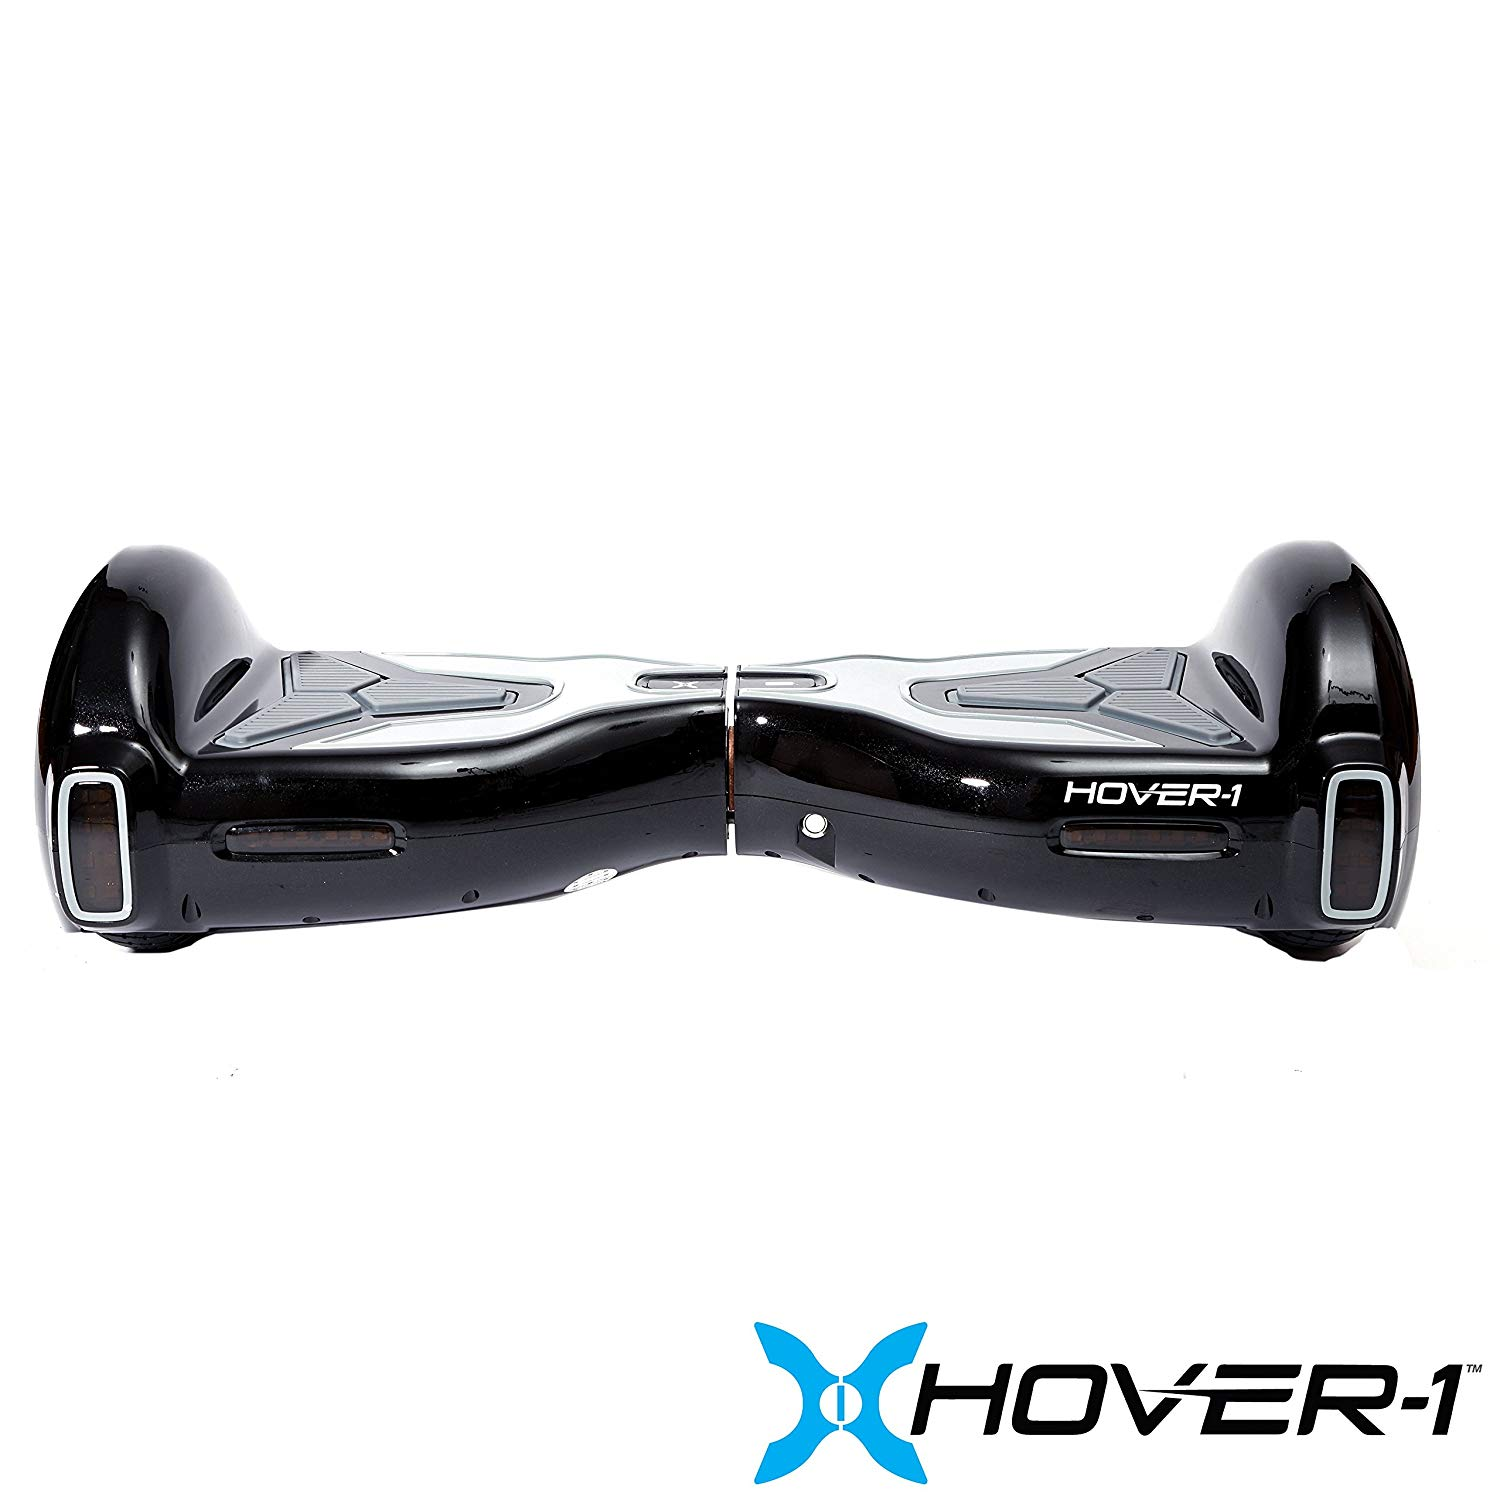 Hover-1 H1- UL 2272 Certified- Electric Self Balancing Hoverboard with Bluetooth, LED Lights and App Connectivity, Black